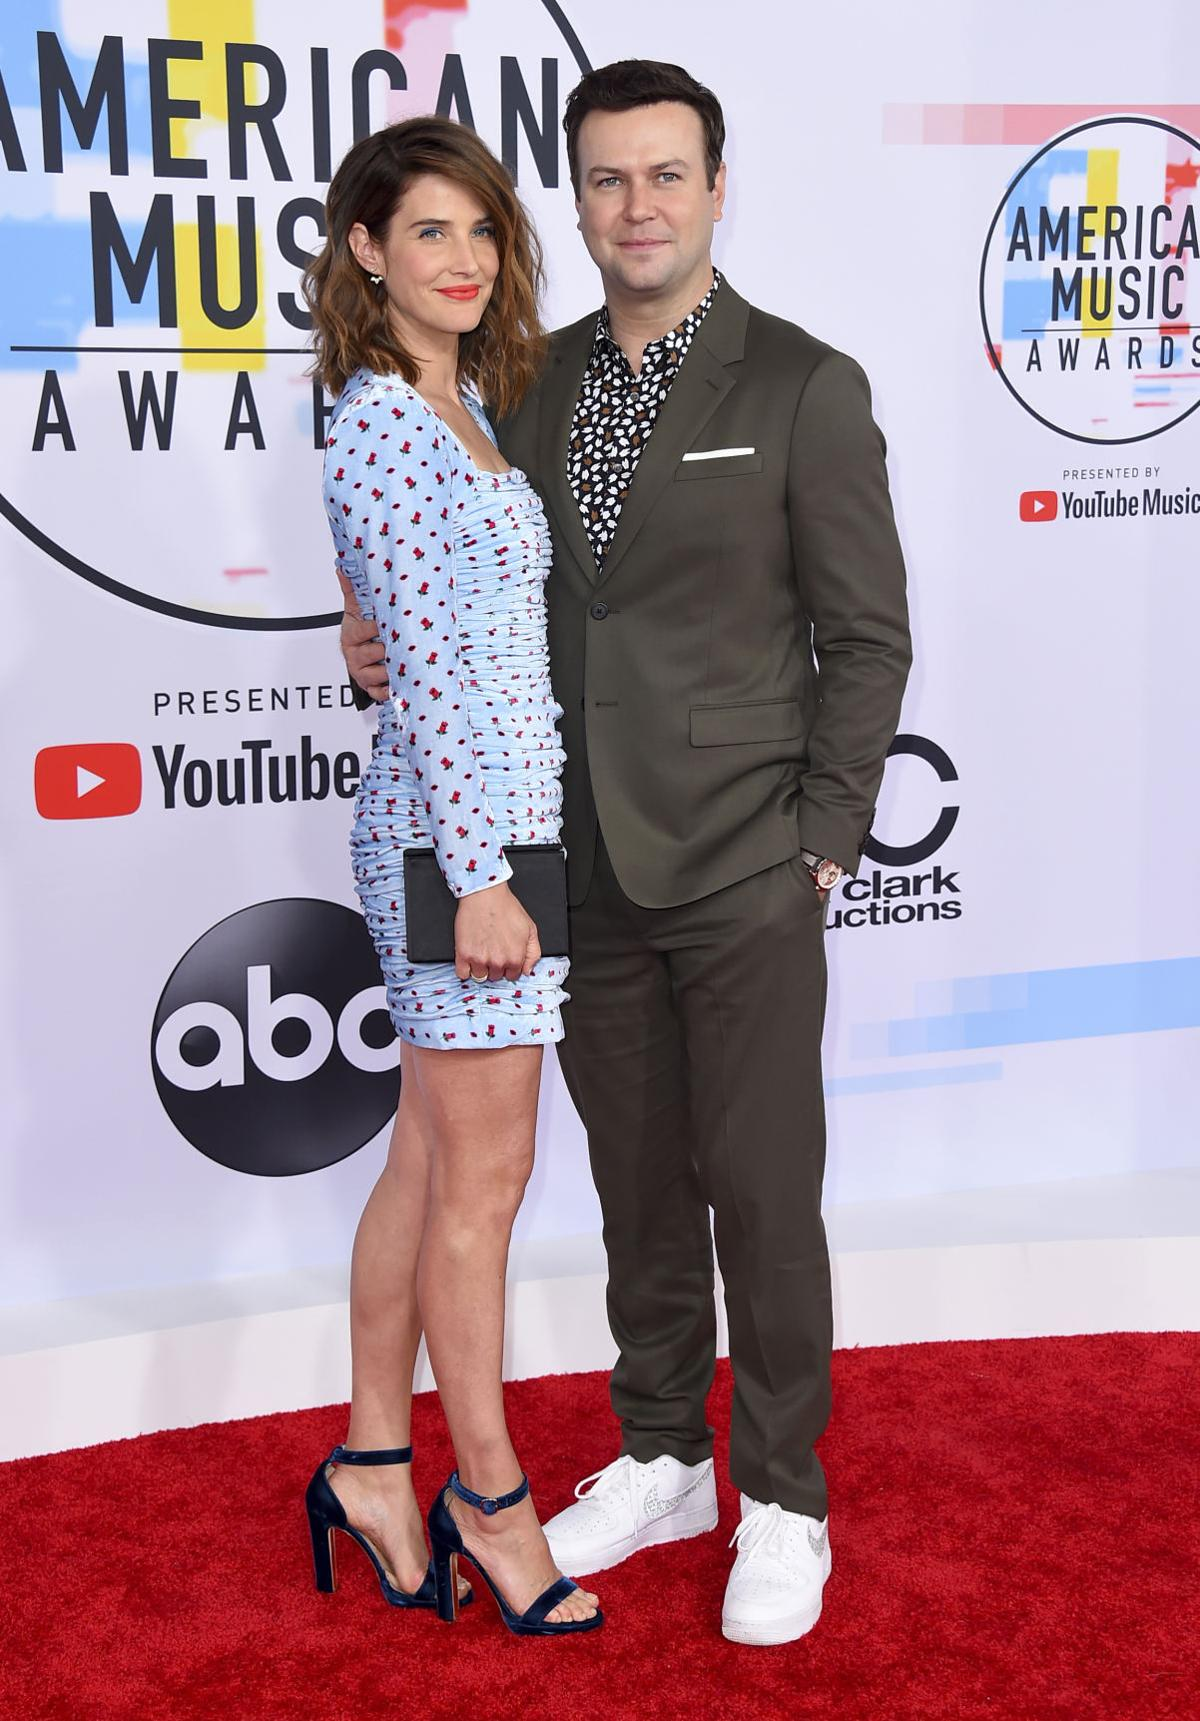 Photos: Scenes from the red carpet at the American Music